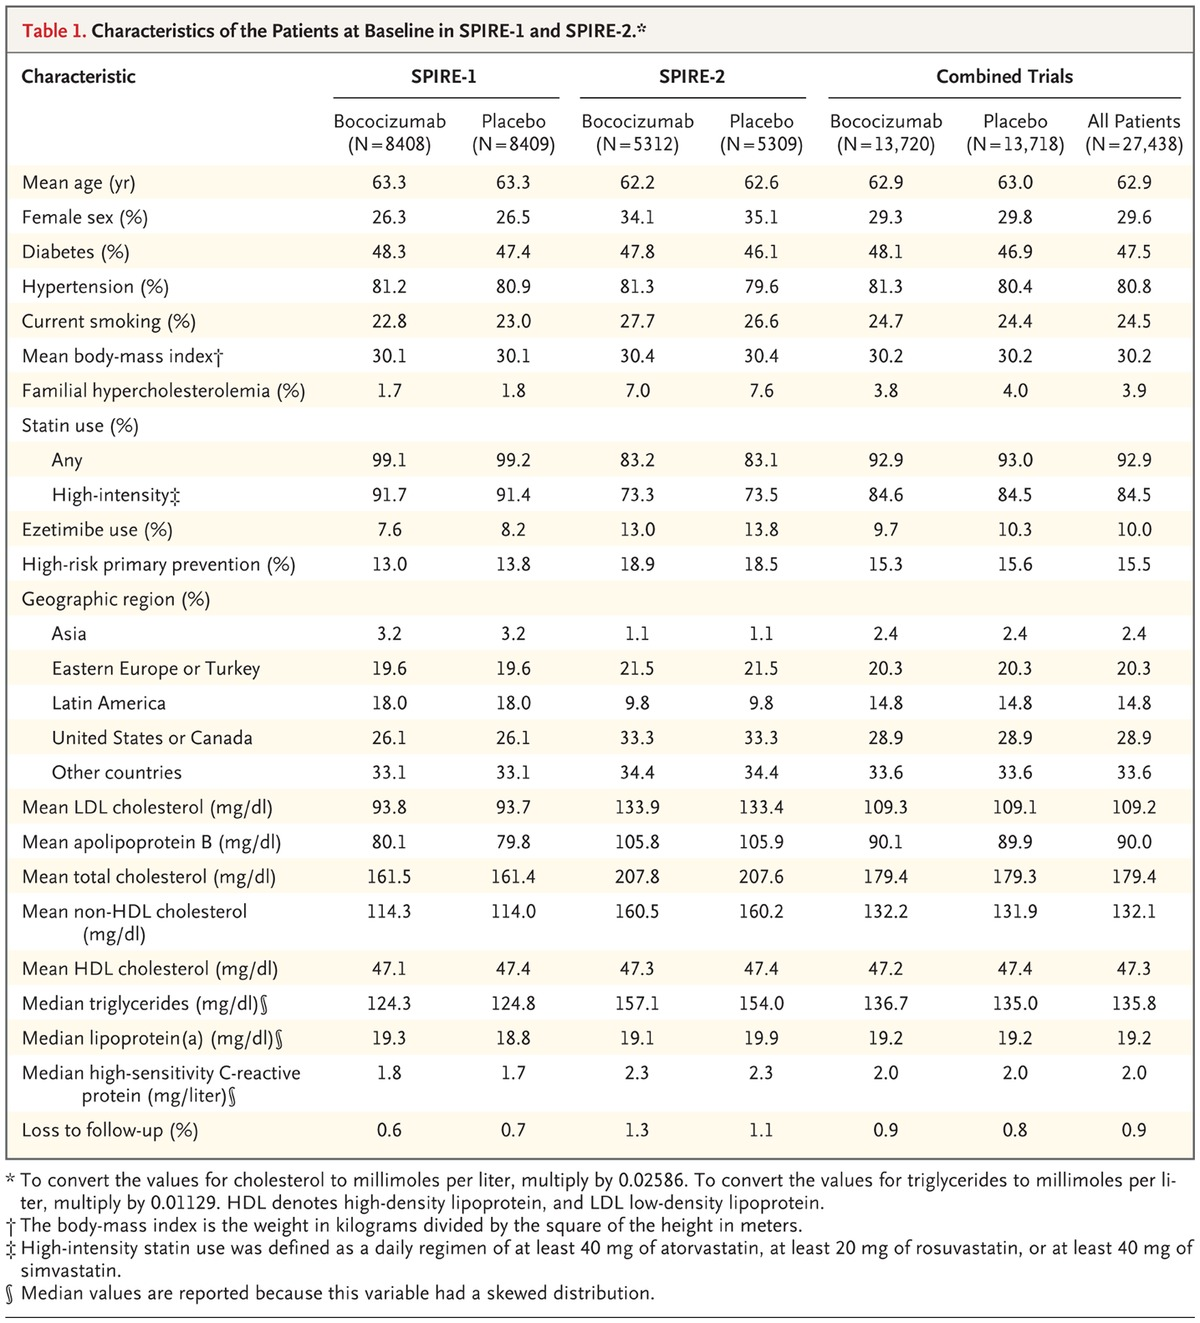 Cardiovascular efficacy and safety of bococizumab in high for 52 week table